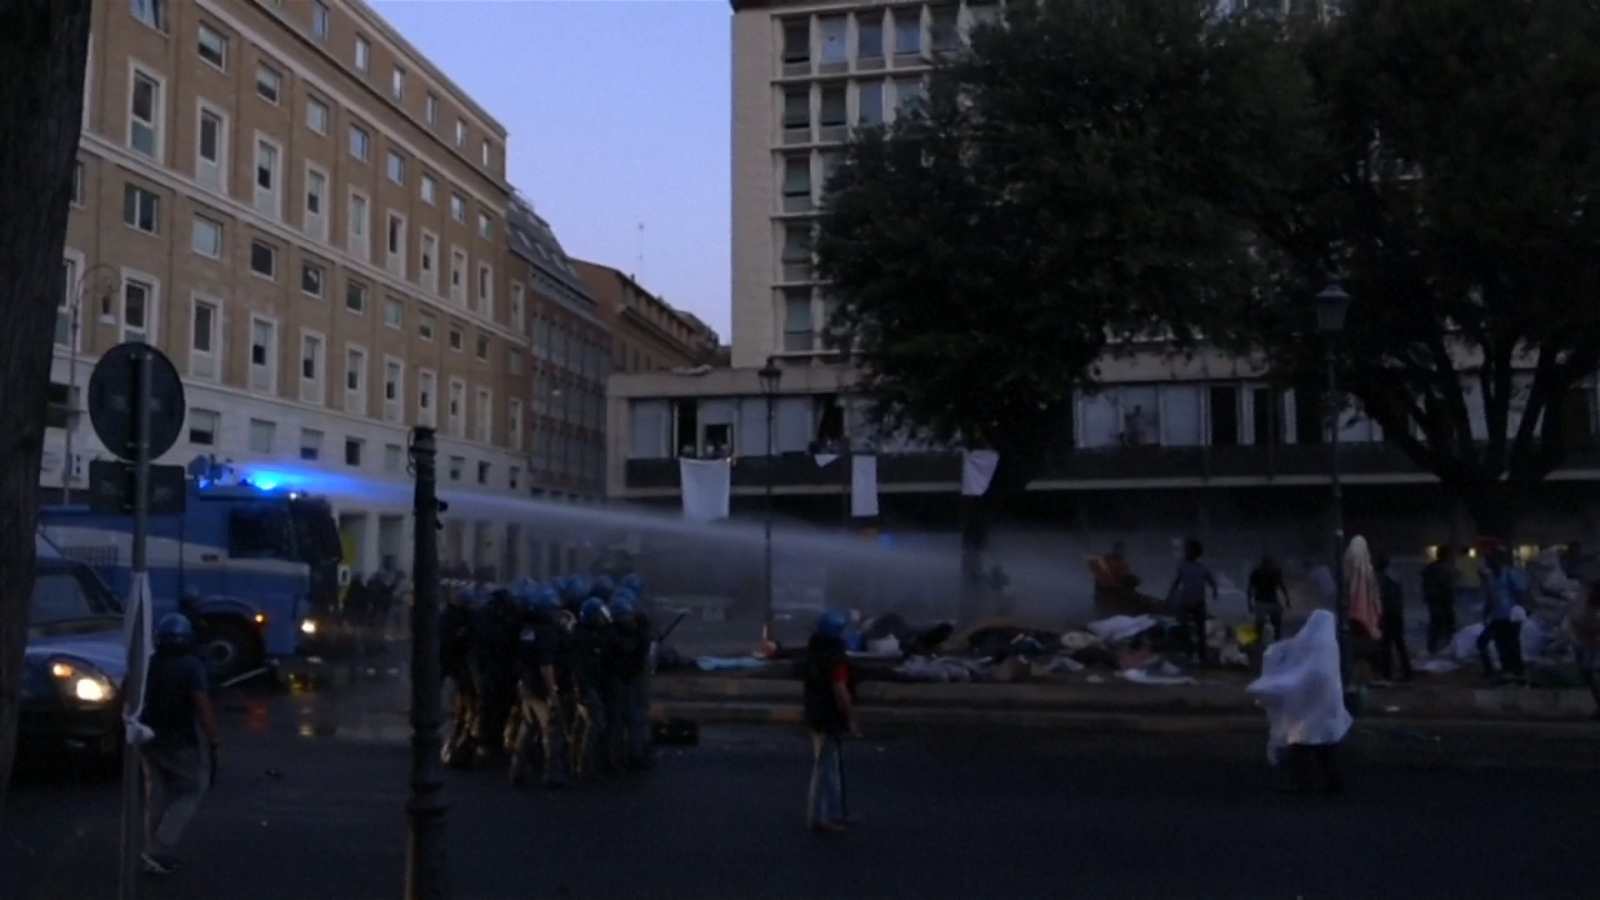 Police Use Water Cannons On Refugees In Rome